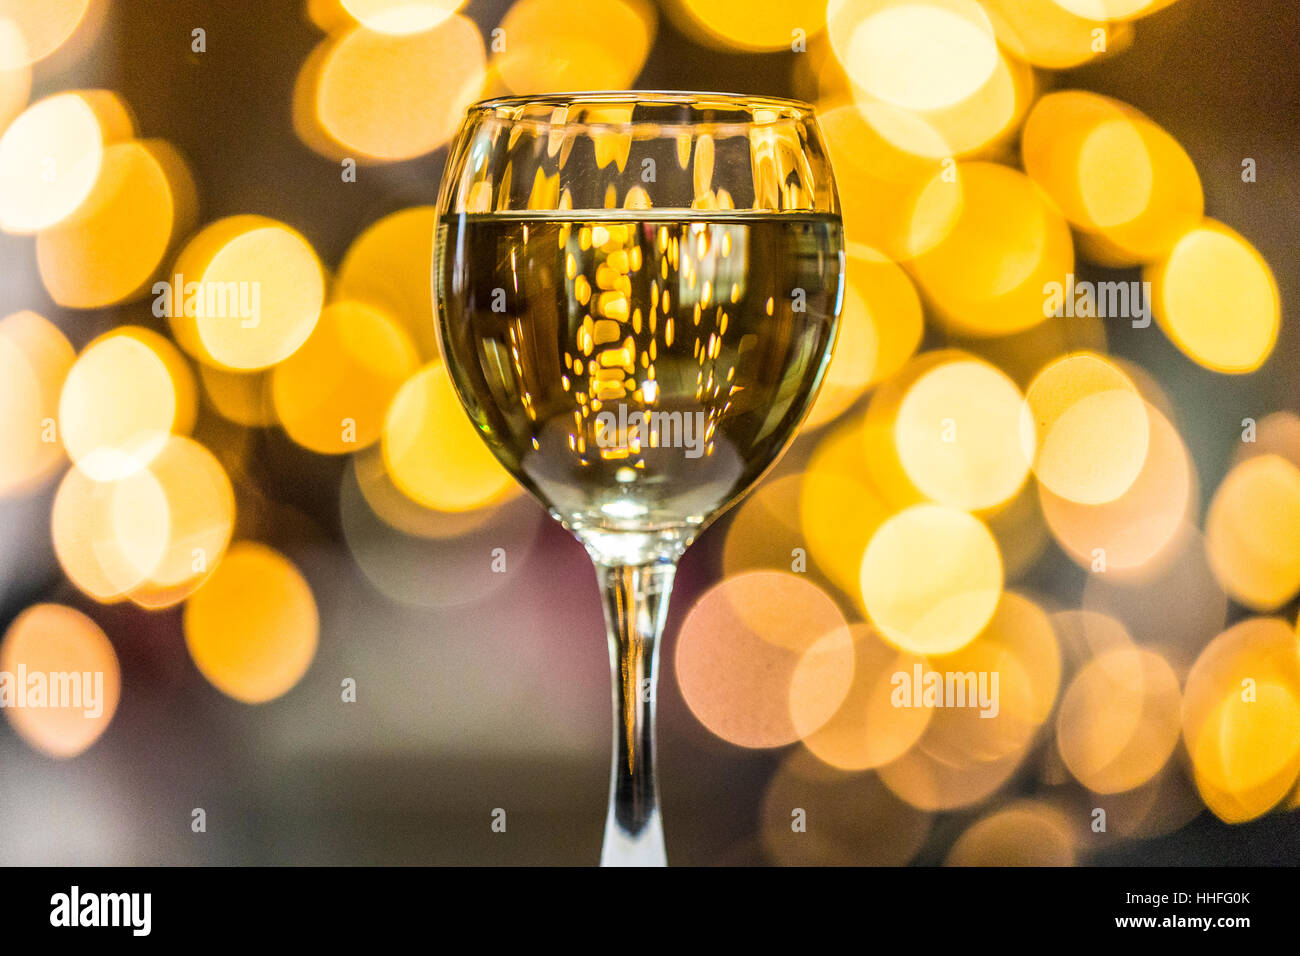 A glass of Pinot Grigio white wine with sparkling lights in the background Stock Photo